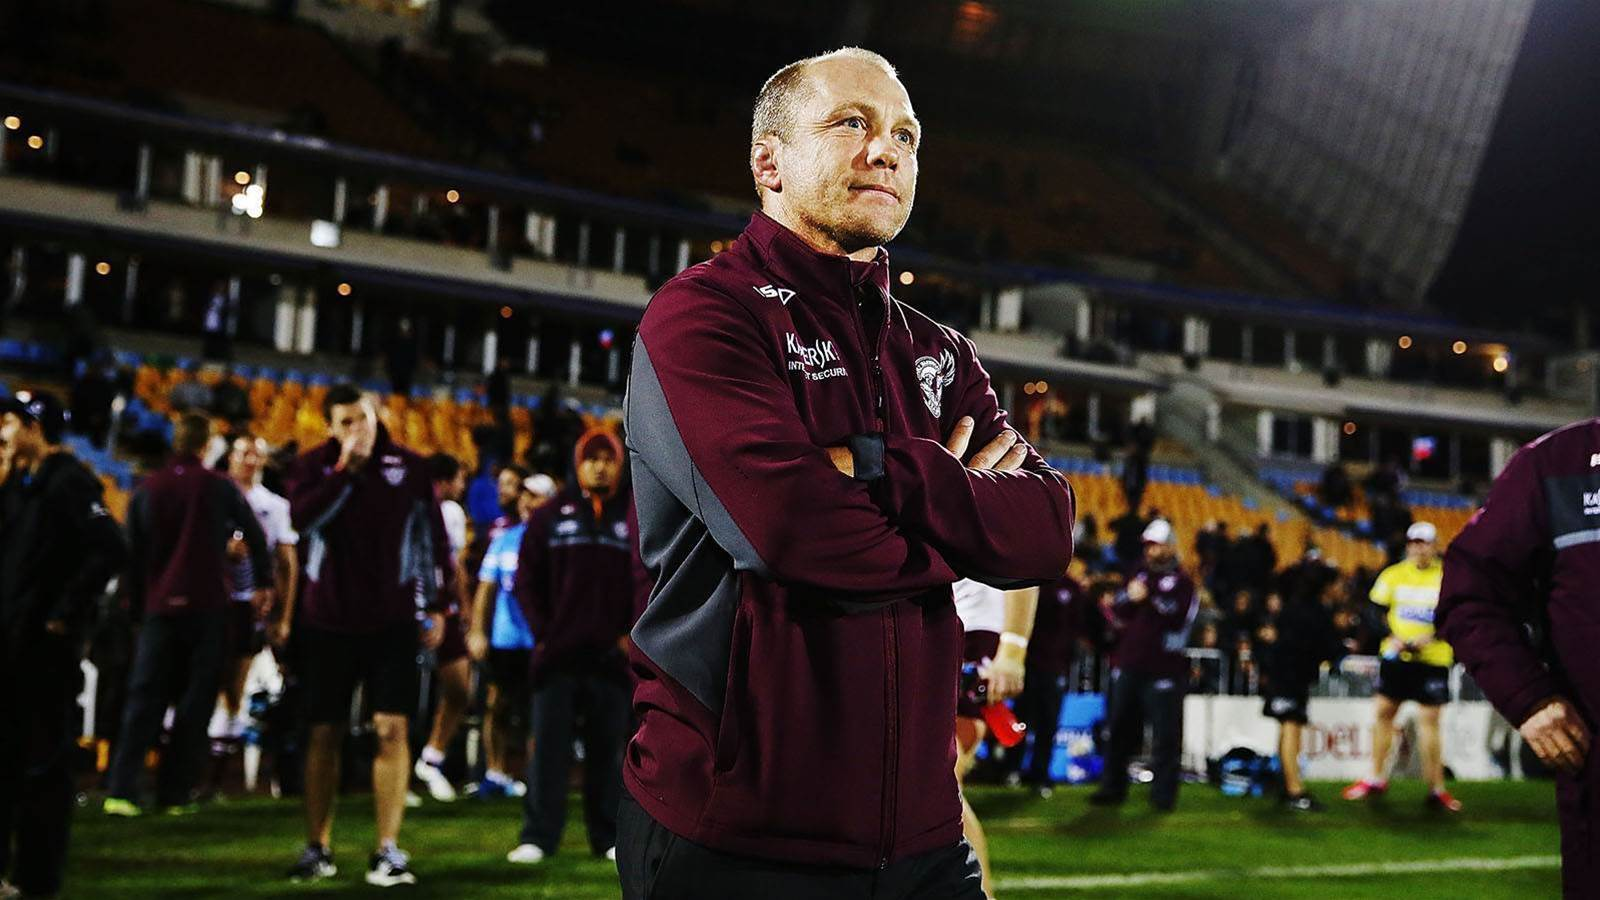 Toovey: I'd go back to Manly